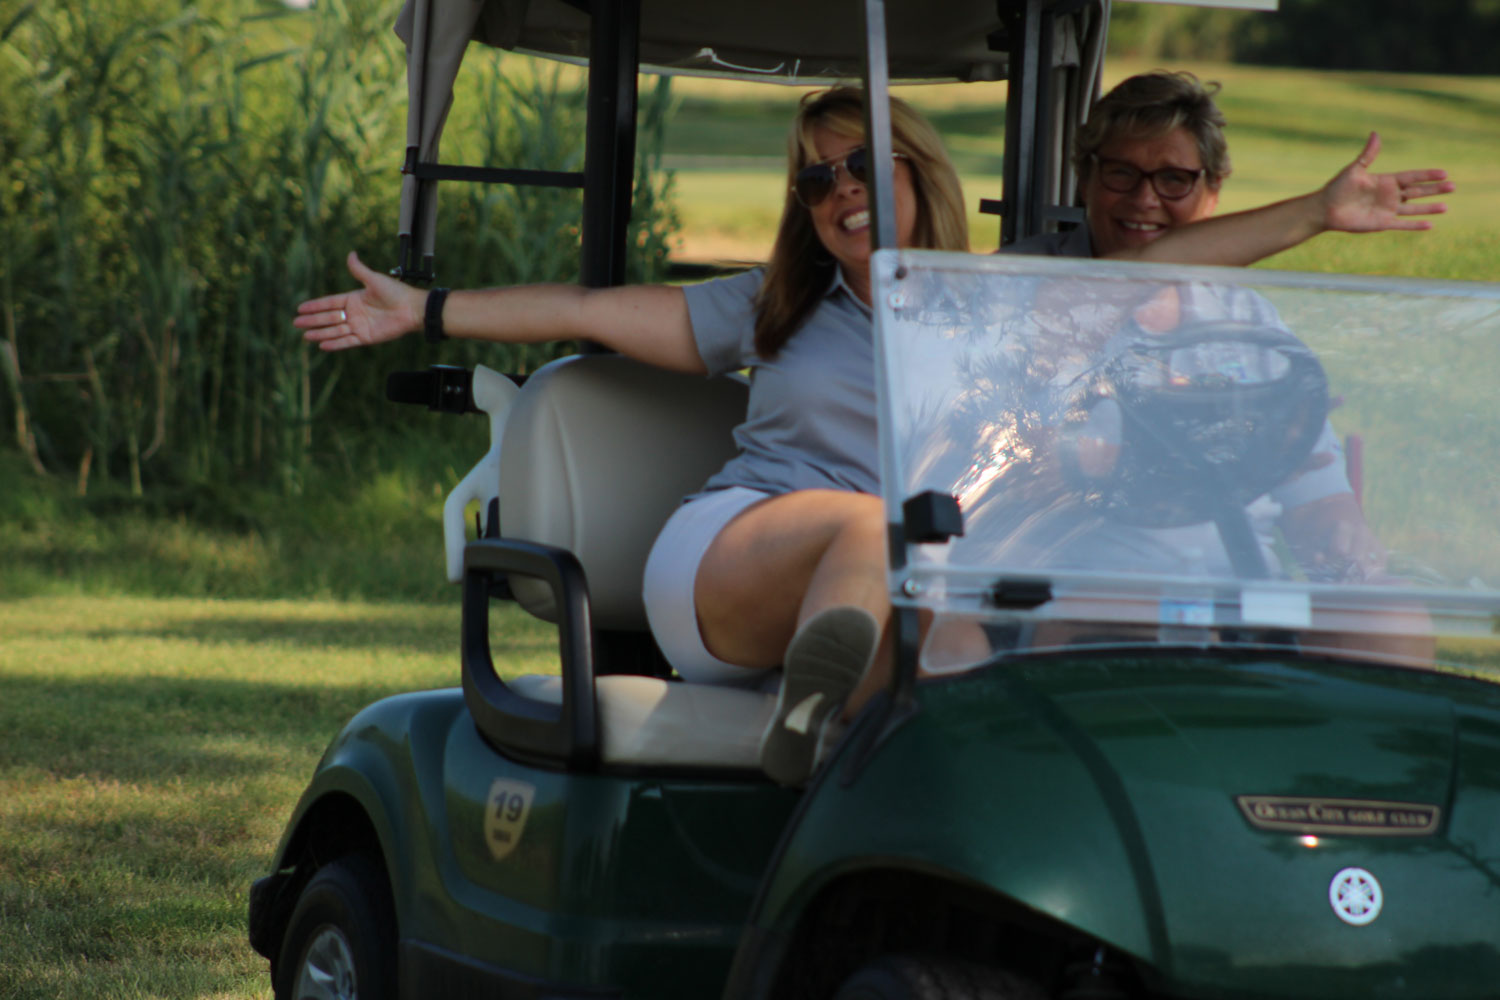 Chesapeake Health Care 6th Annual Golf Tournament gallery image #6